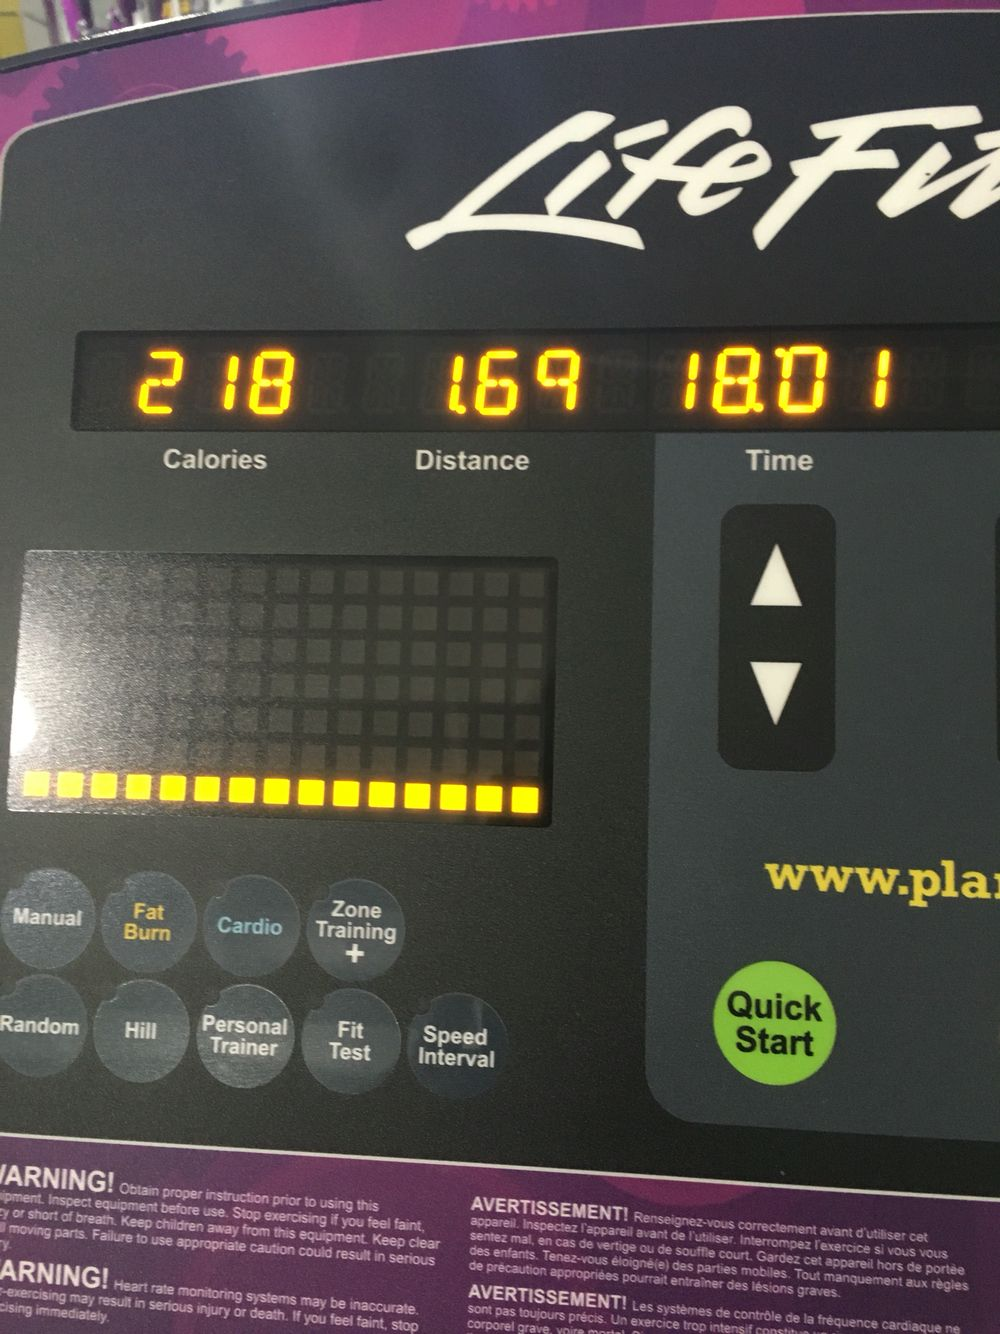 59 treadmill how to start running at home workouts